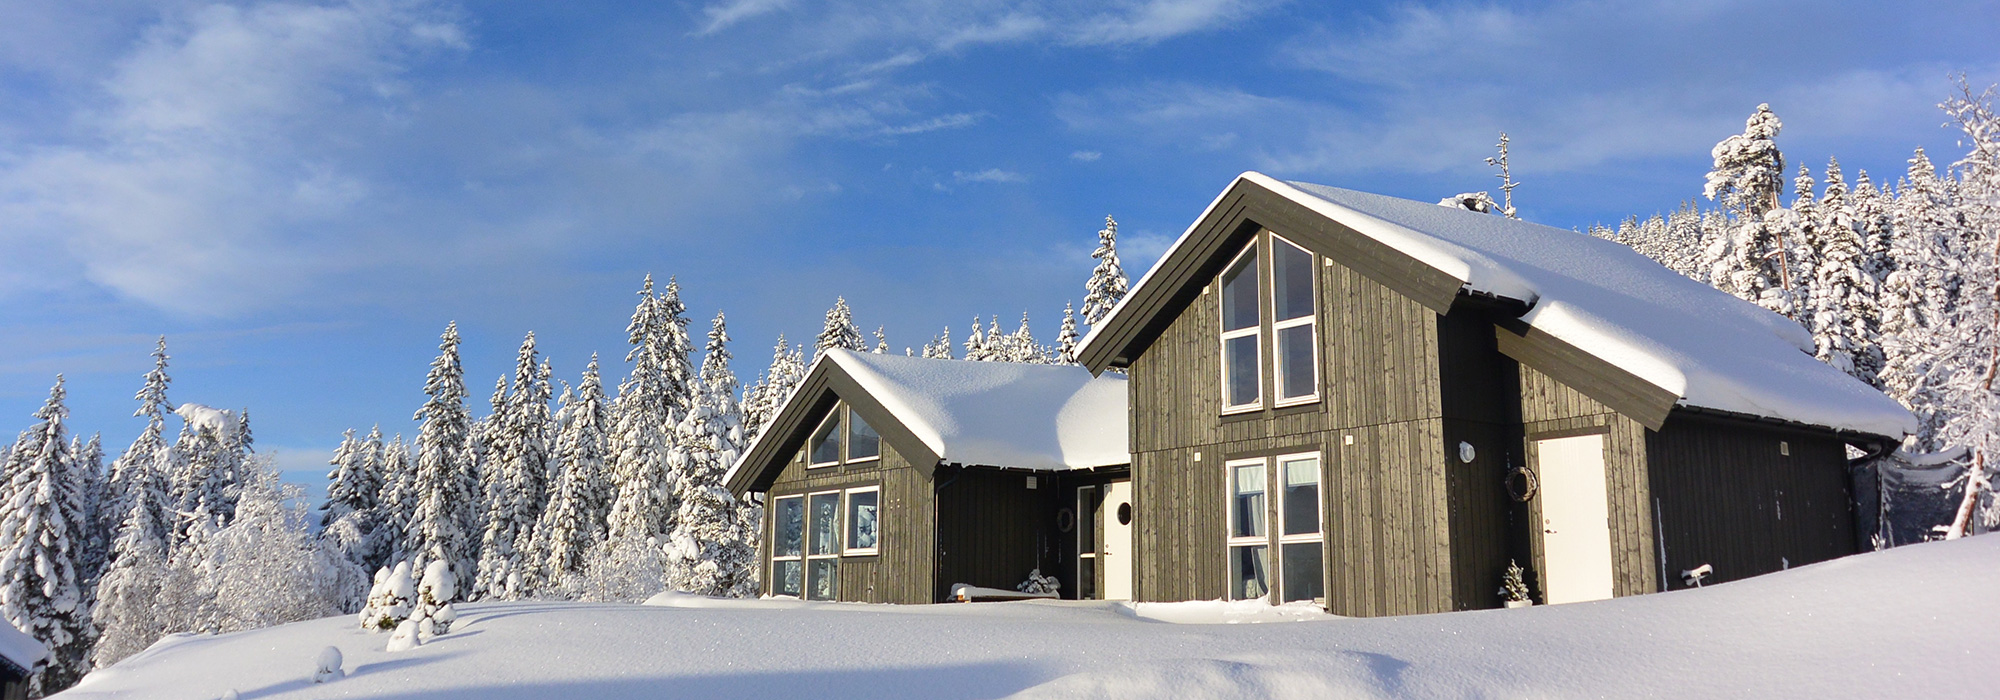 Vinter Slideshow 200x700